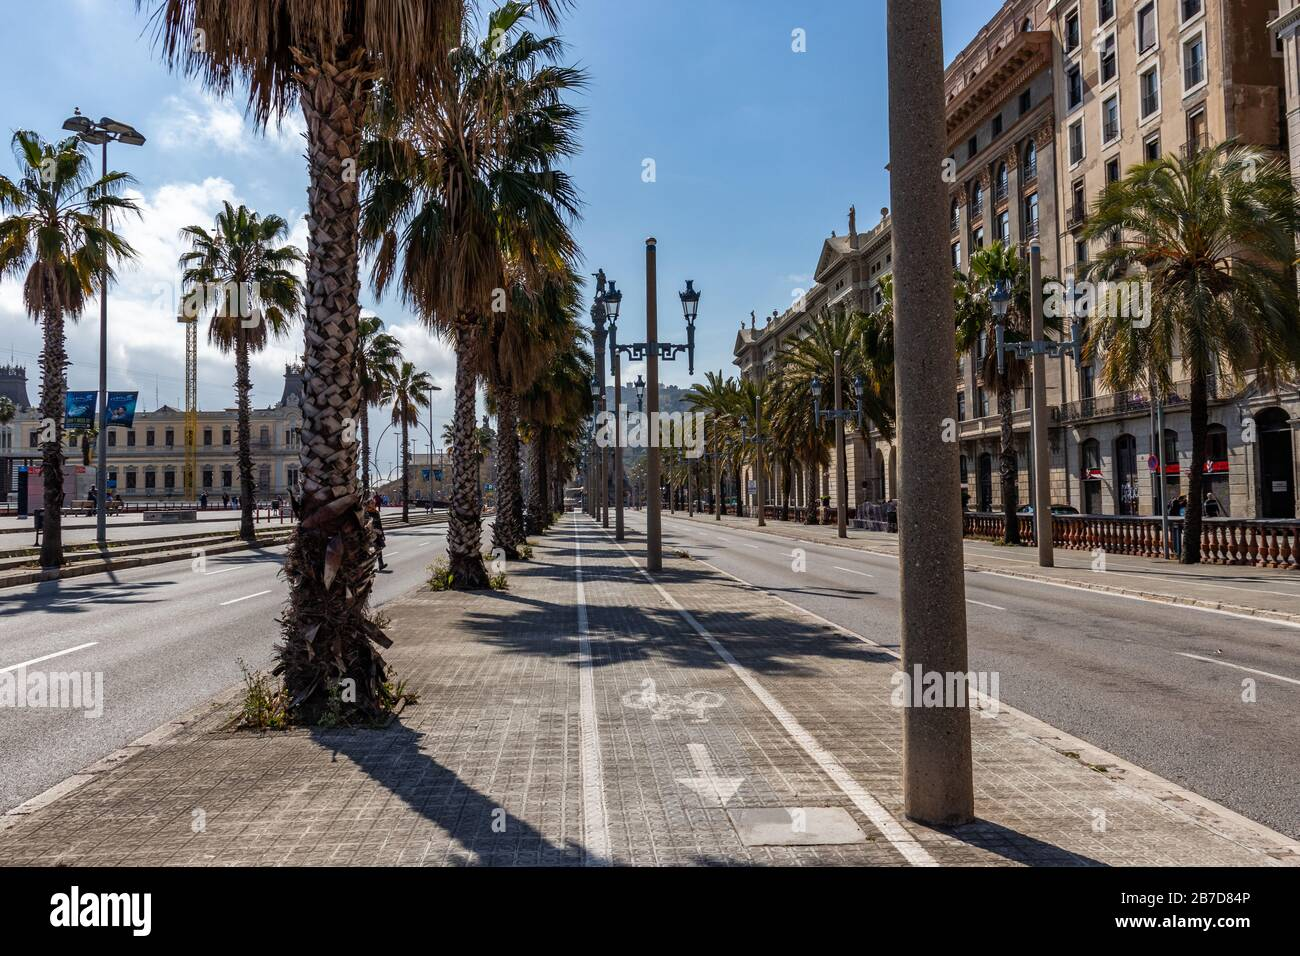 Barcelona Spain 15th March 2020 Empty Streets Of Barcelona After Spanish Government Decided To Confine The Whole Country To Reduce Coronavirus Infections Credit Dino Geromella Alamy Live News Stock Photo Alamy